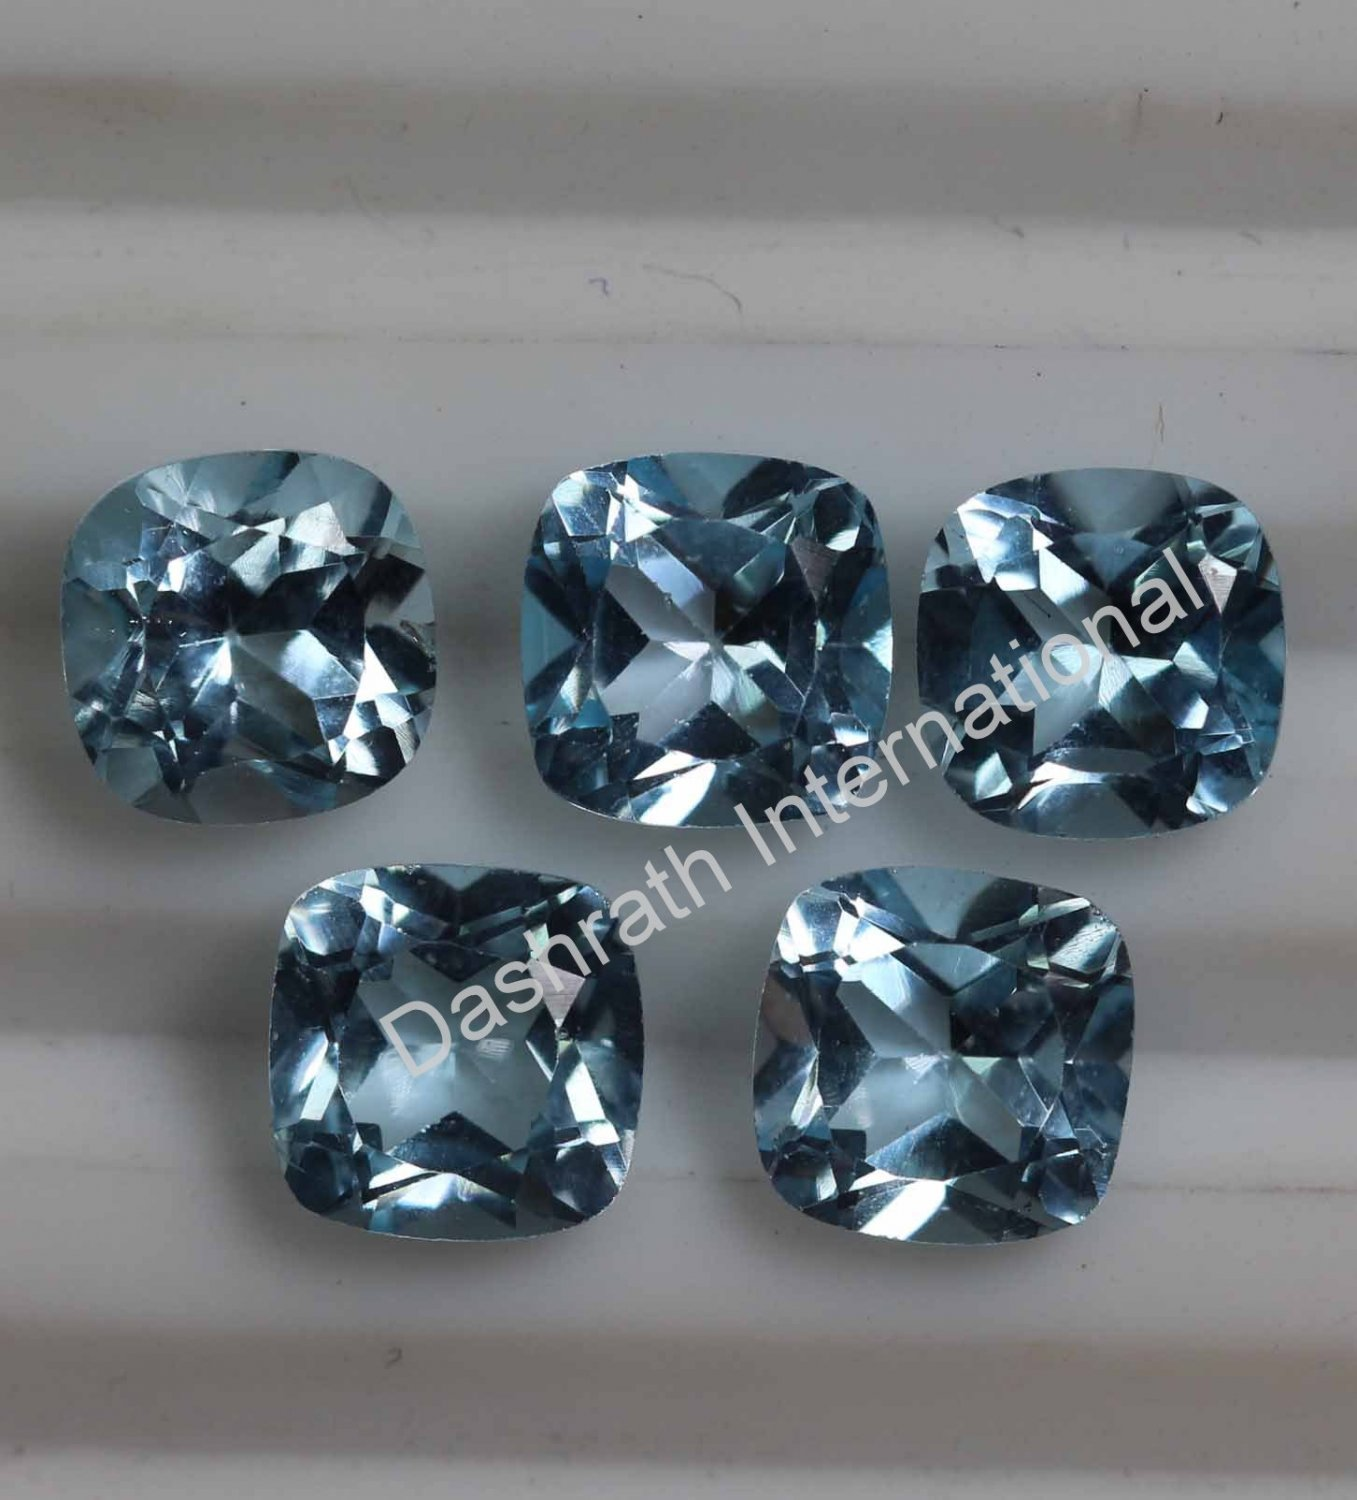 8mm Natural Sky Blue Topaz Faceted Cut Cushion 100 Pieces Lot Top Quality Loose Gemstone